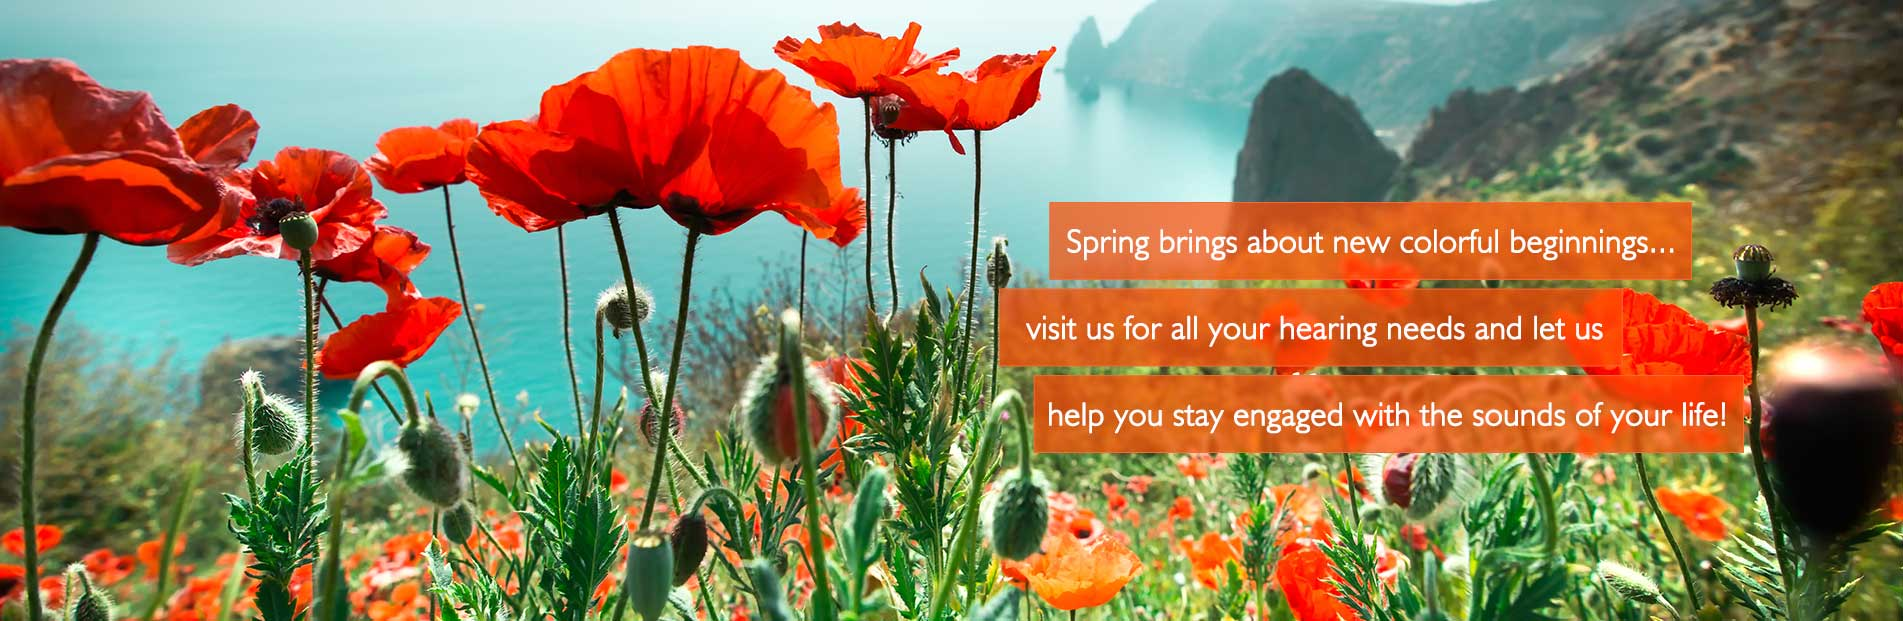 Spring Banner - Hear 4 U Audiology